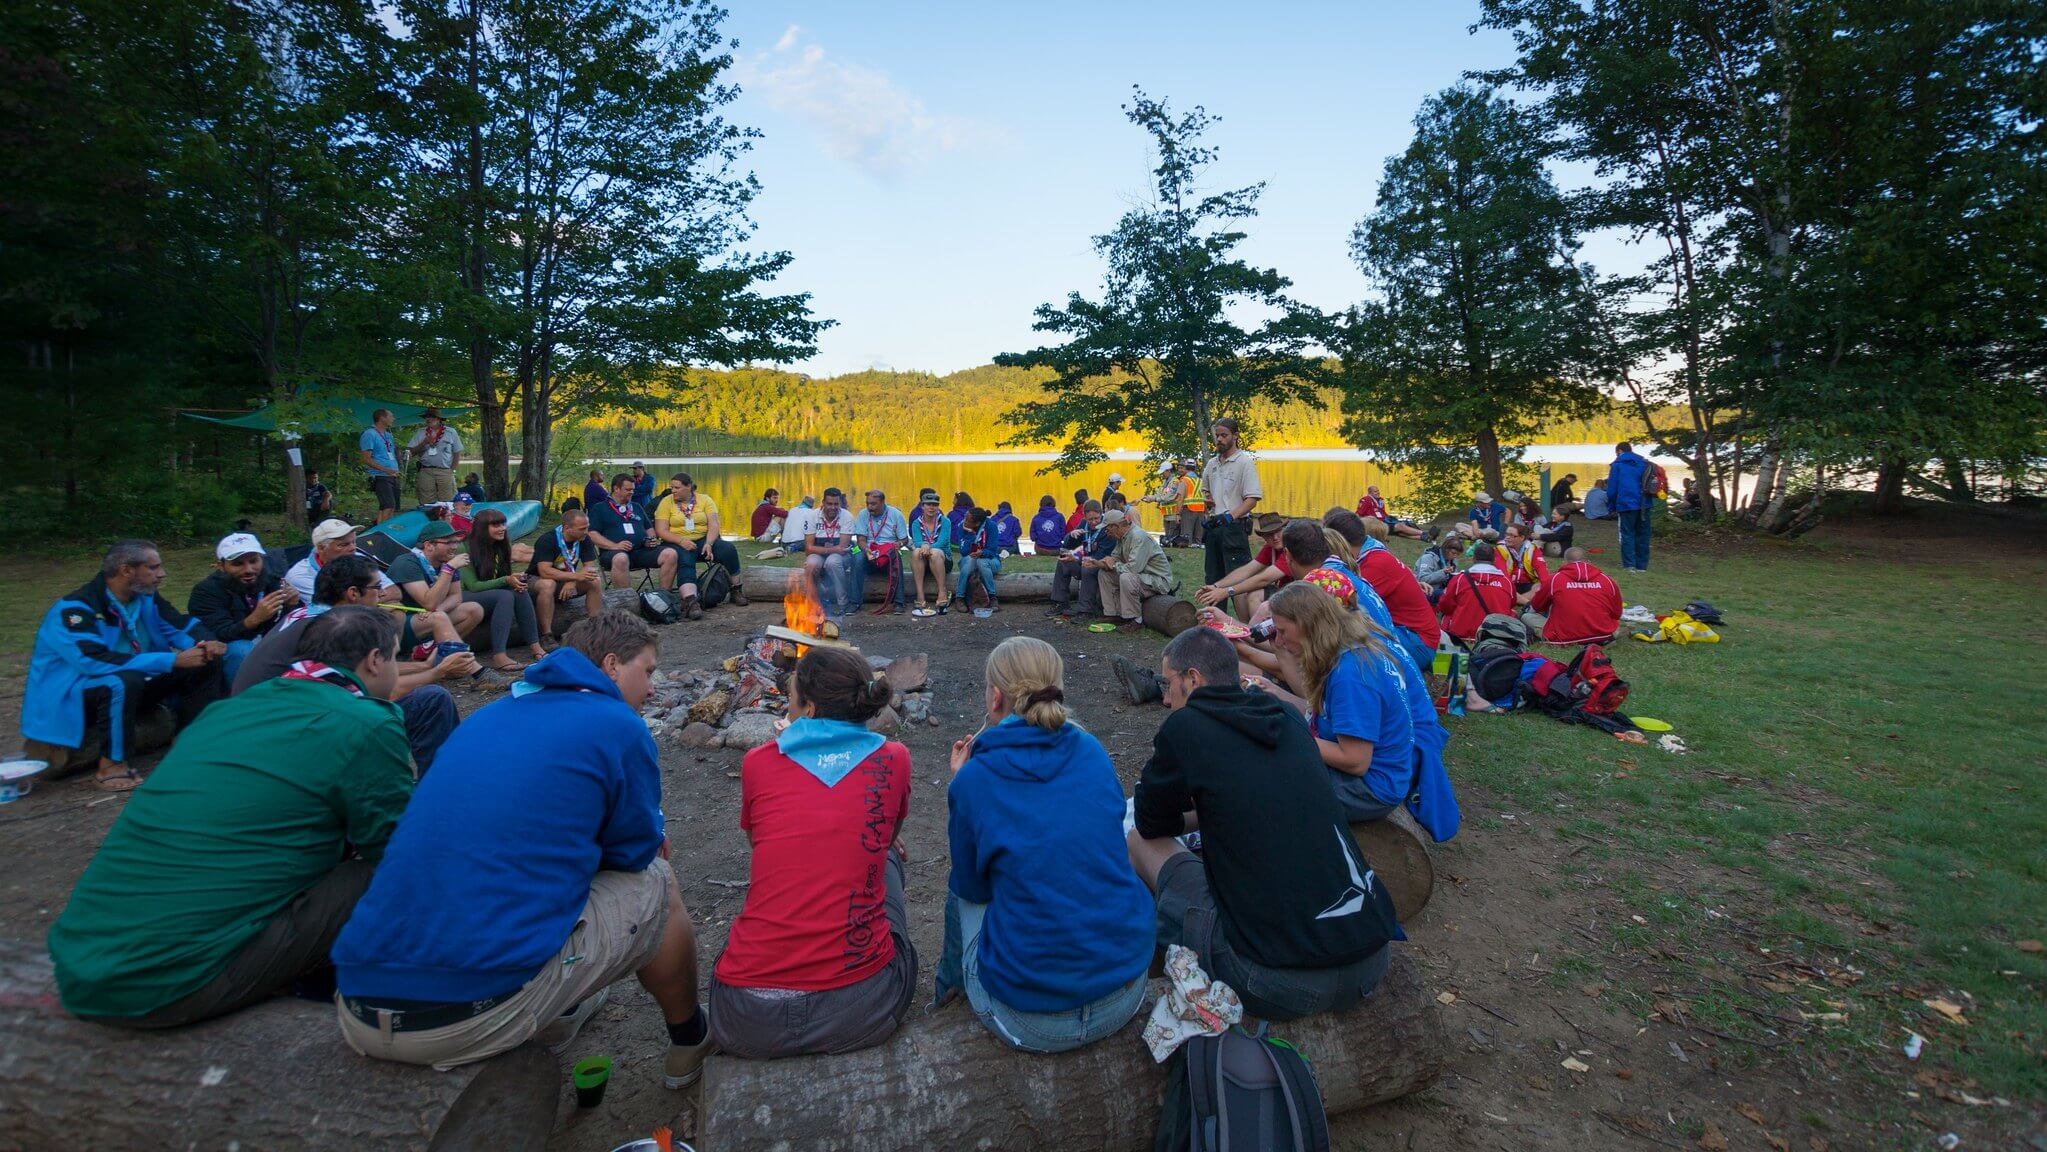 WOSM's Action on Envionrmental Sustainability Scouts Around Campfire